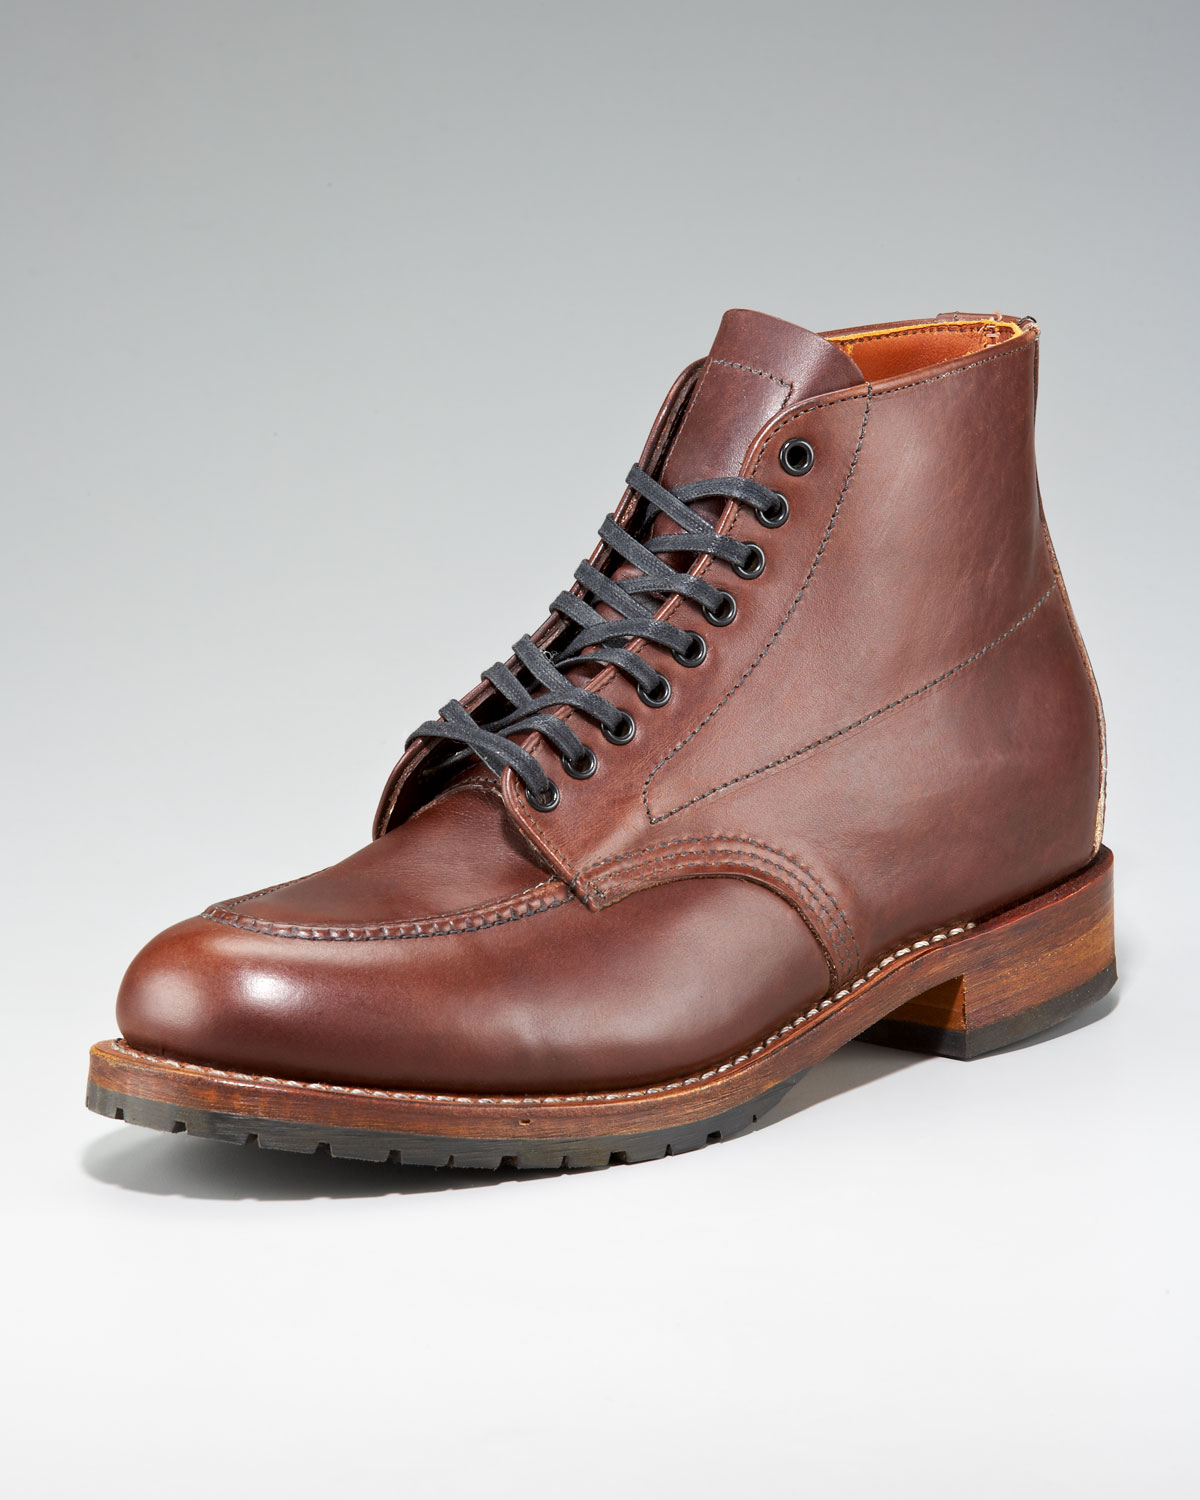 Where To Buy Red Wing Boots qzYHzpyq